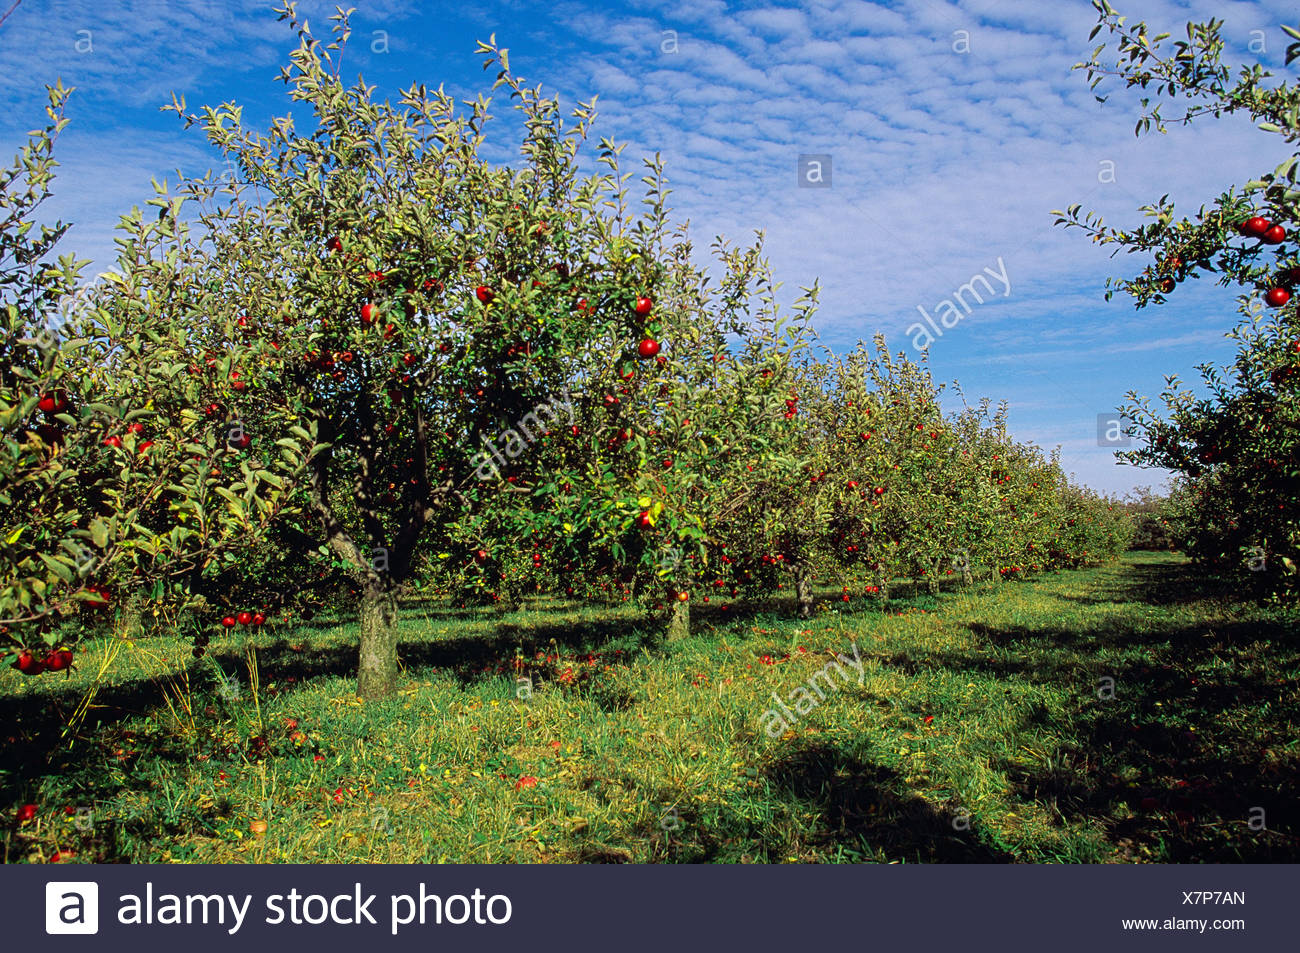 Agriculture - Red Delicious apple orchard in early autumn; trees loaded with fruit ready for harvest / Northern Illinois, USA. - Stock Image